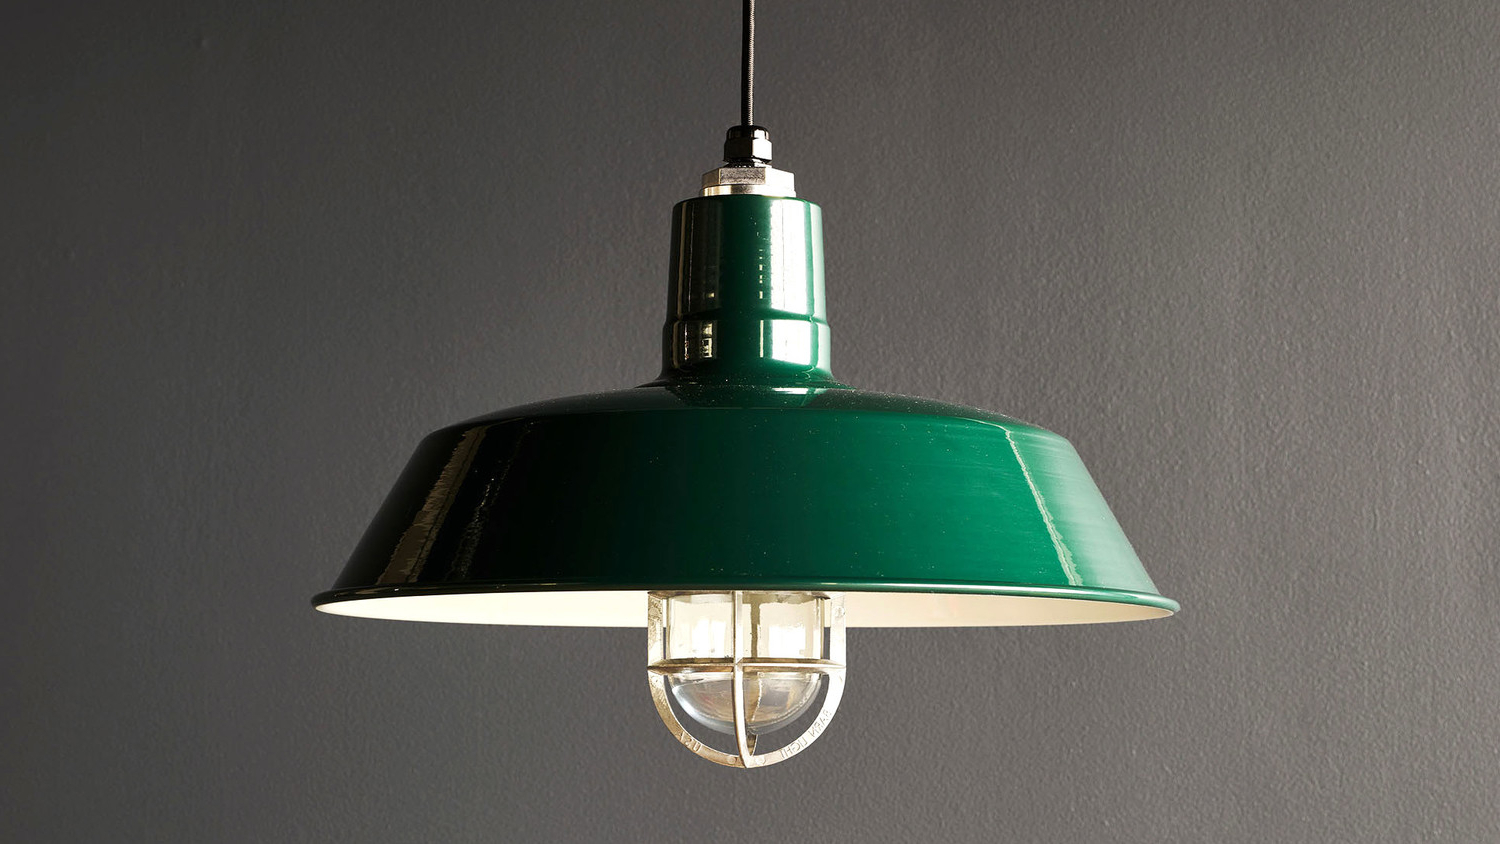 Remarkable Deal On Finnick 1 Light Geometric Pendant Finish Intended For Trendy Finnick 1 Light Geometric Pendants (Gallery 13 of 20)